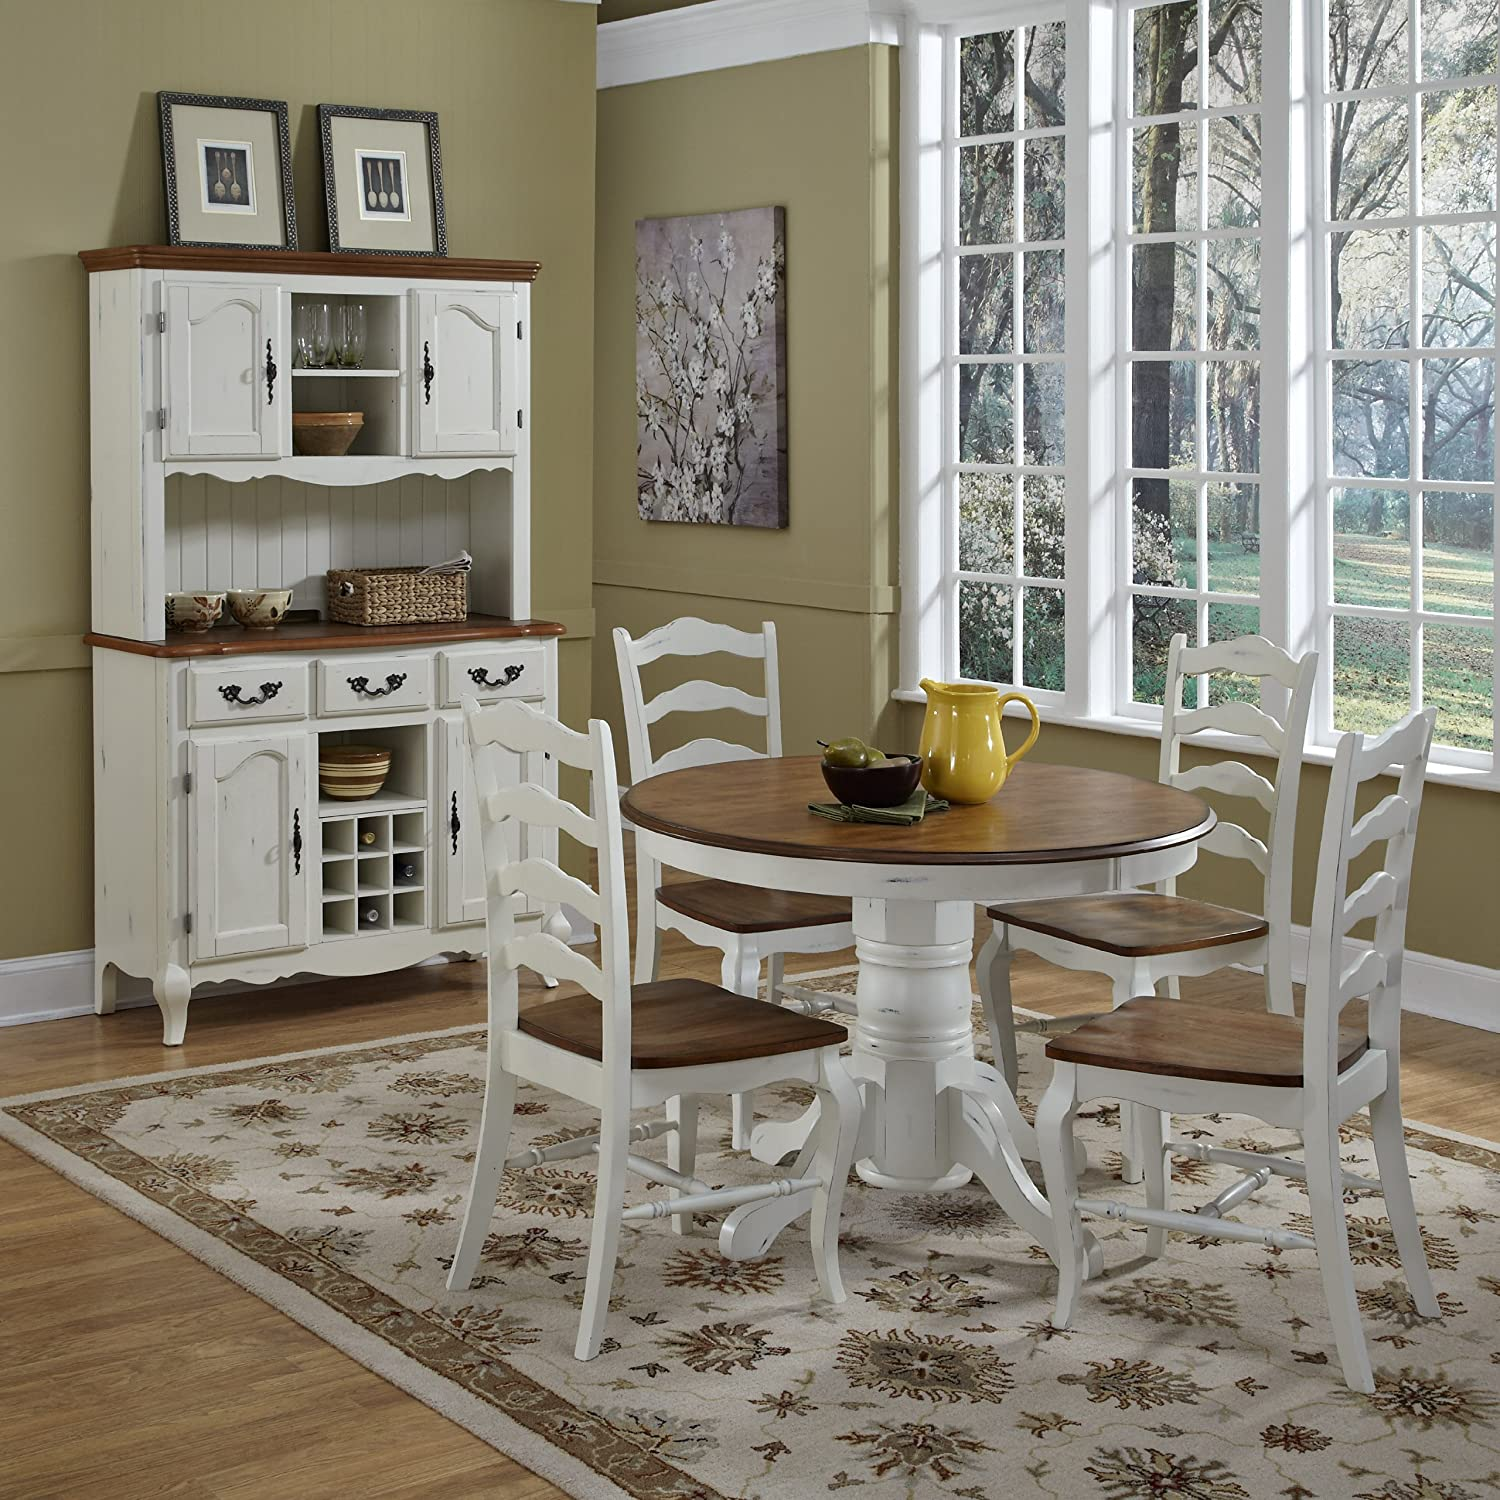 Amazon.com   Home Styles 5518 30 The French Countryside Pedestal Table, Oak  U0026 Rubbed White   Tables